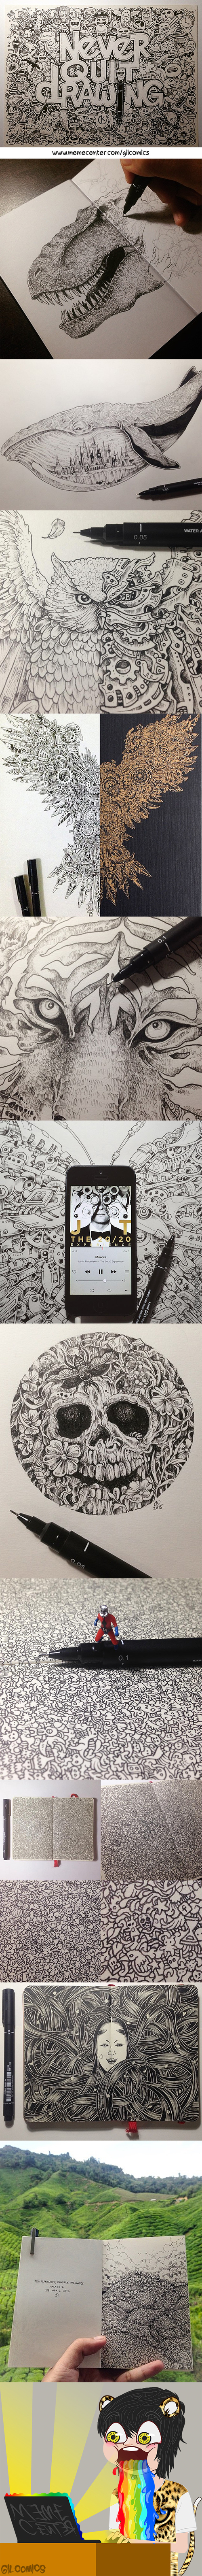 Never Quit Drawing (Credit To Kerby Rosanes For All Of The Epic Doodles)